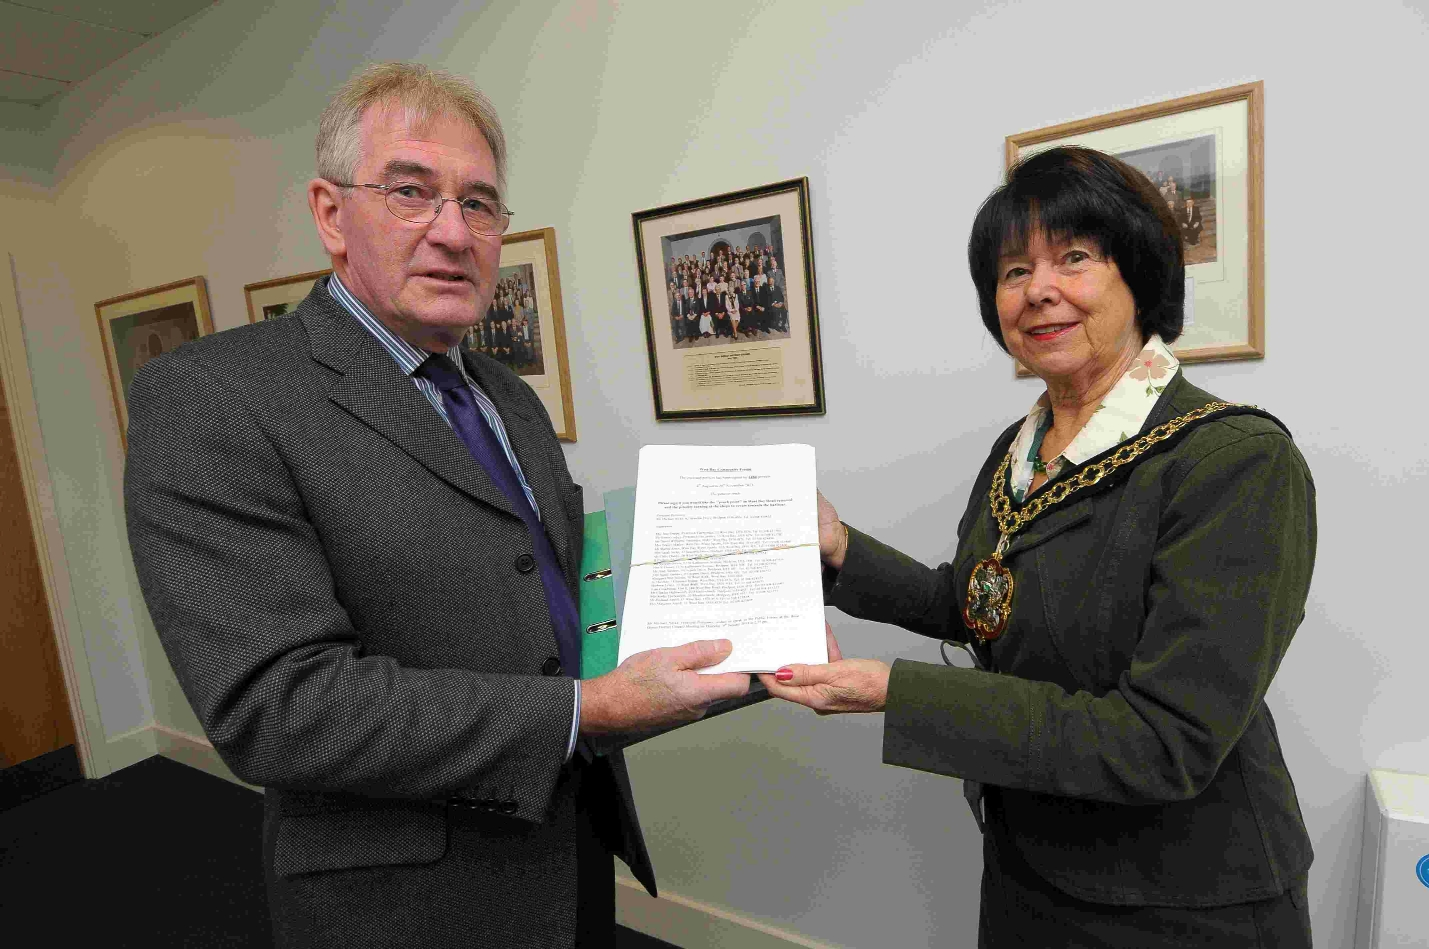 West Dorset District Council chairman Gillian Summers receives the petition from Mike Nicks